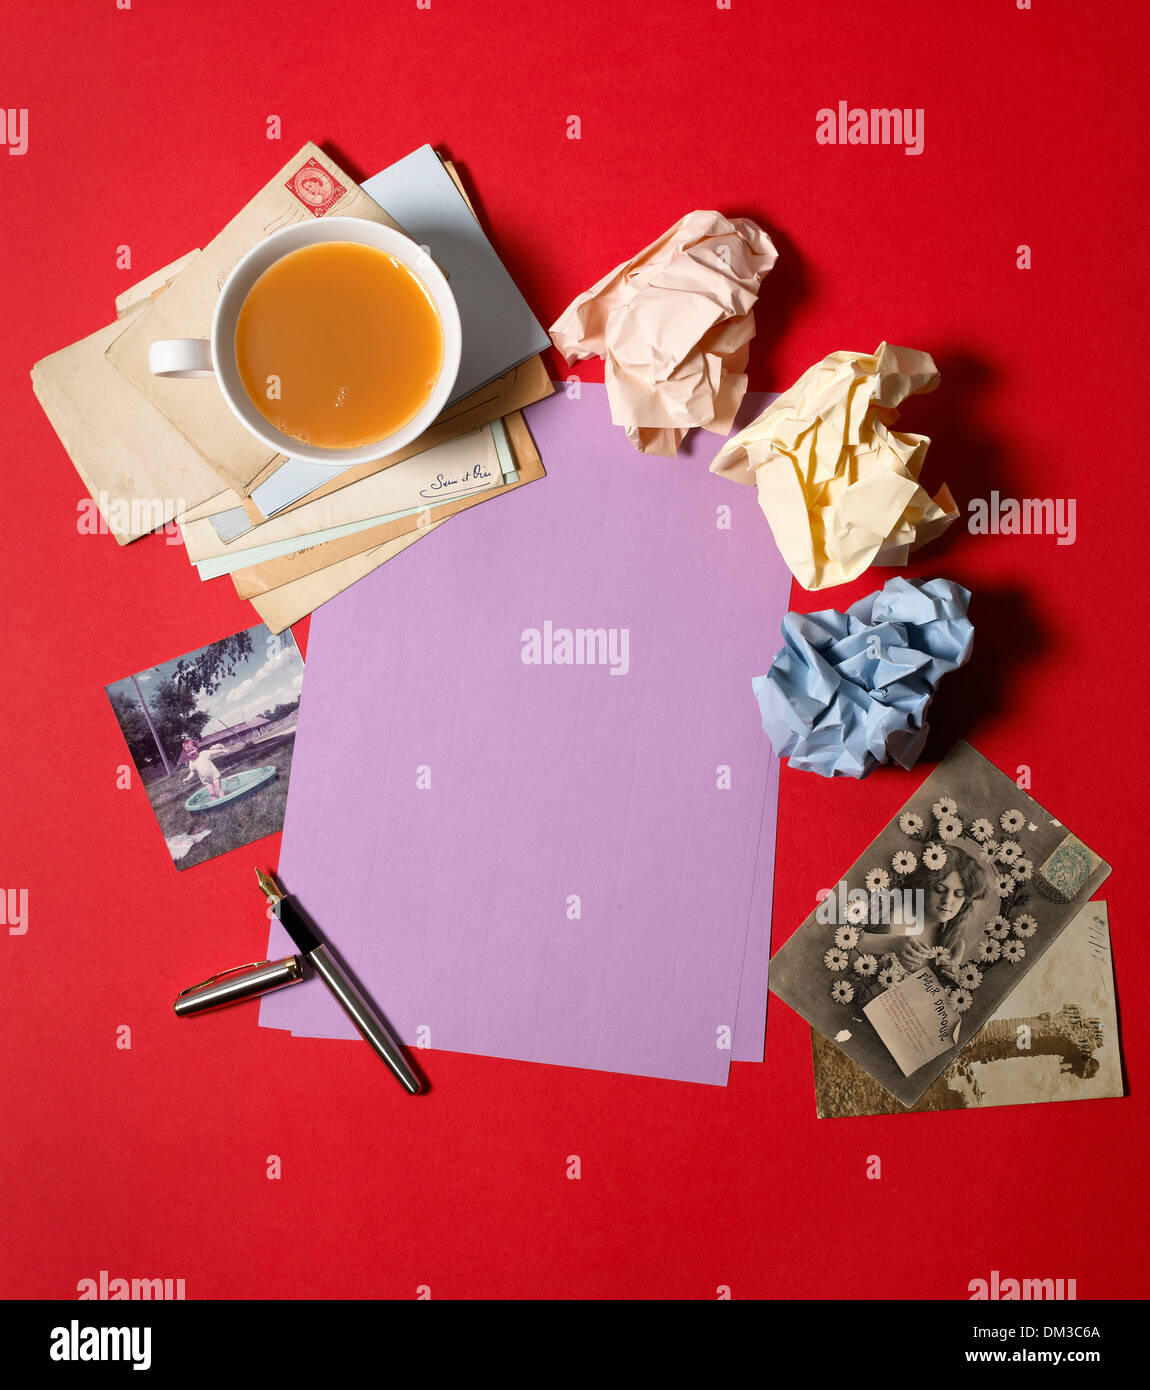 Writing, correspondence letter set on a red background - Stock Image